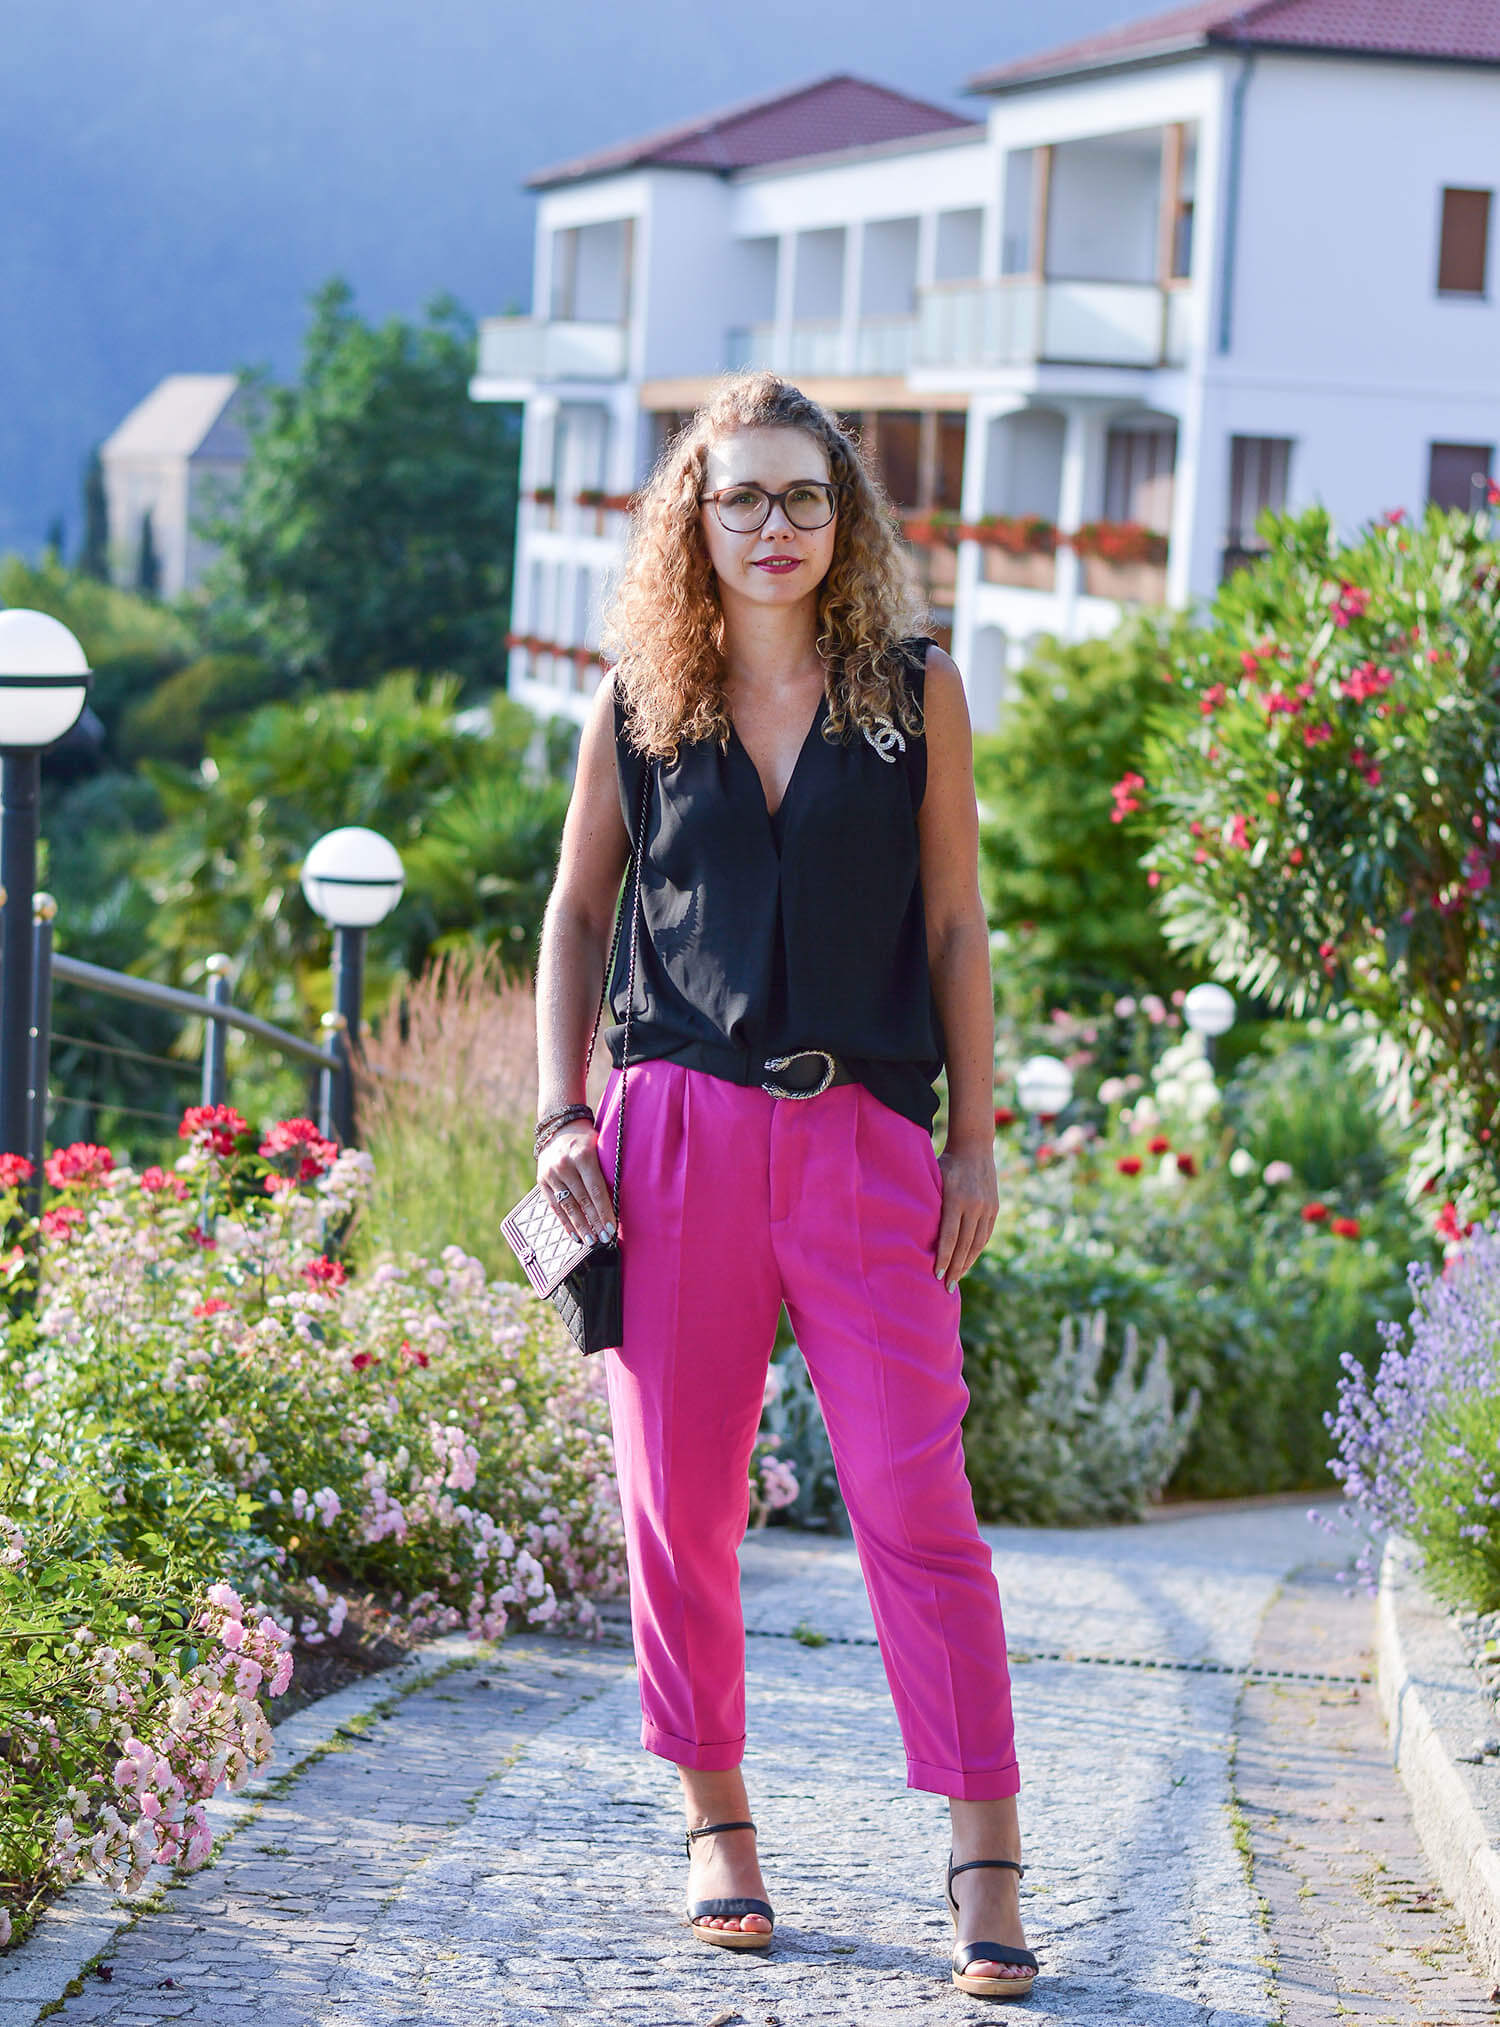 kationette-fashionblog-nrw-Outfit-Pink-Pants-Gucci-Belt-Chanel-Bag-South-Tyrol